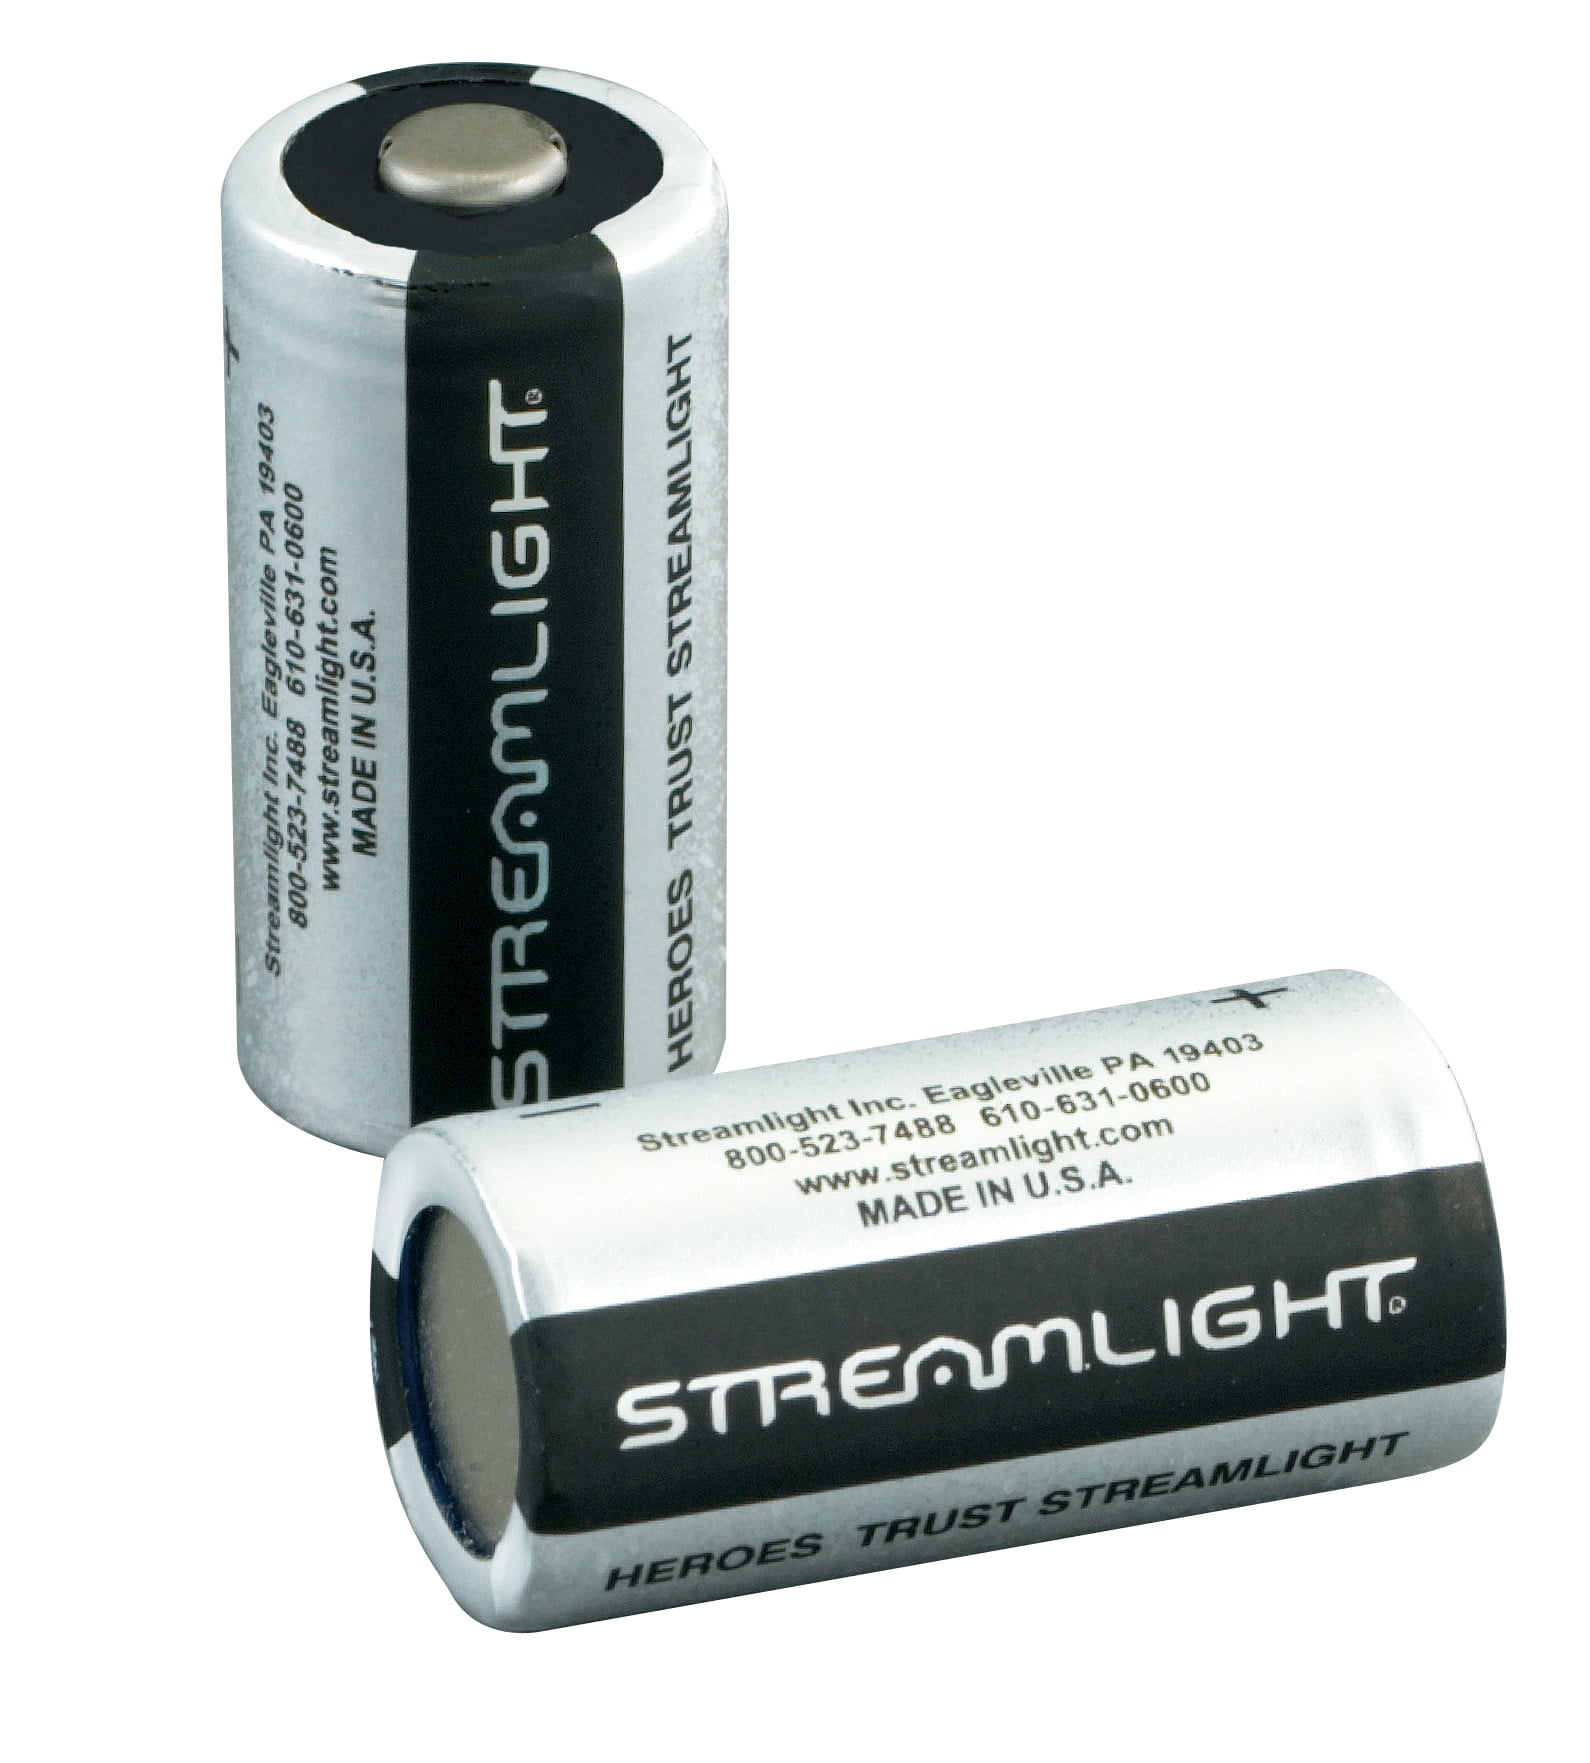 Streamlight CR123A 3V Lithium Batteries, 2 pack by Streamlight